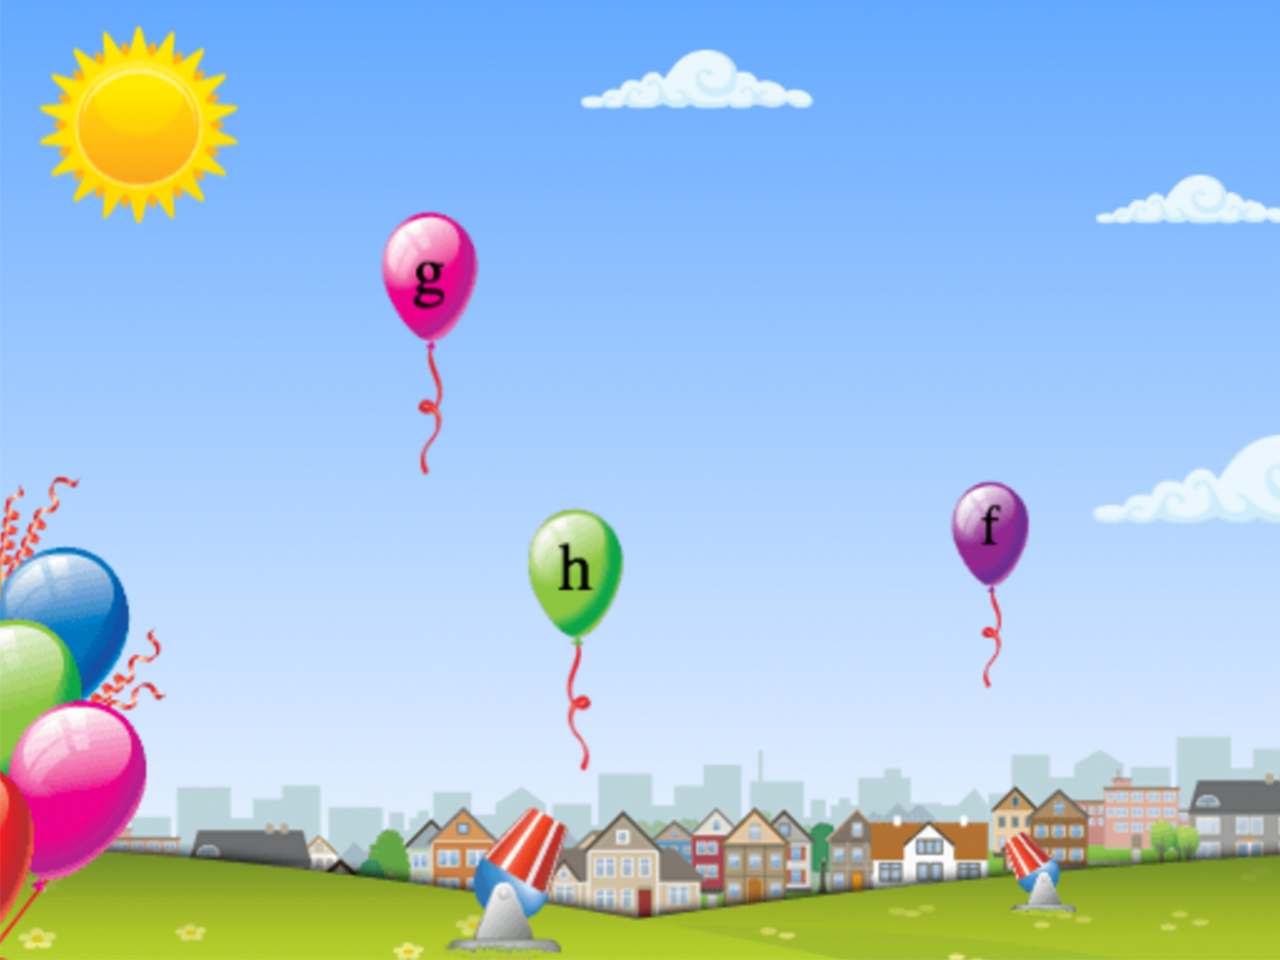 A still from the typing game Type-A-Balloon